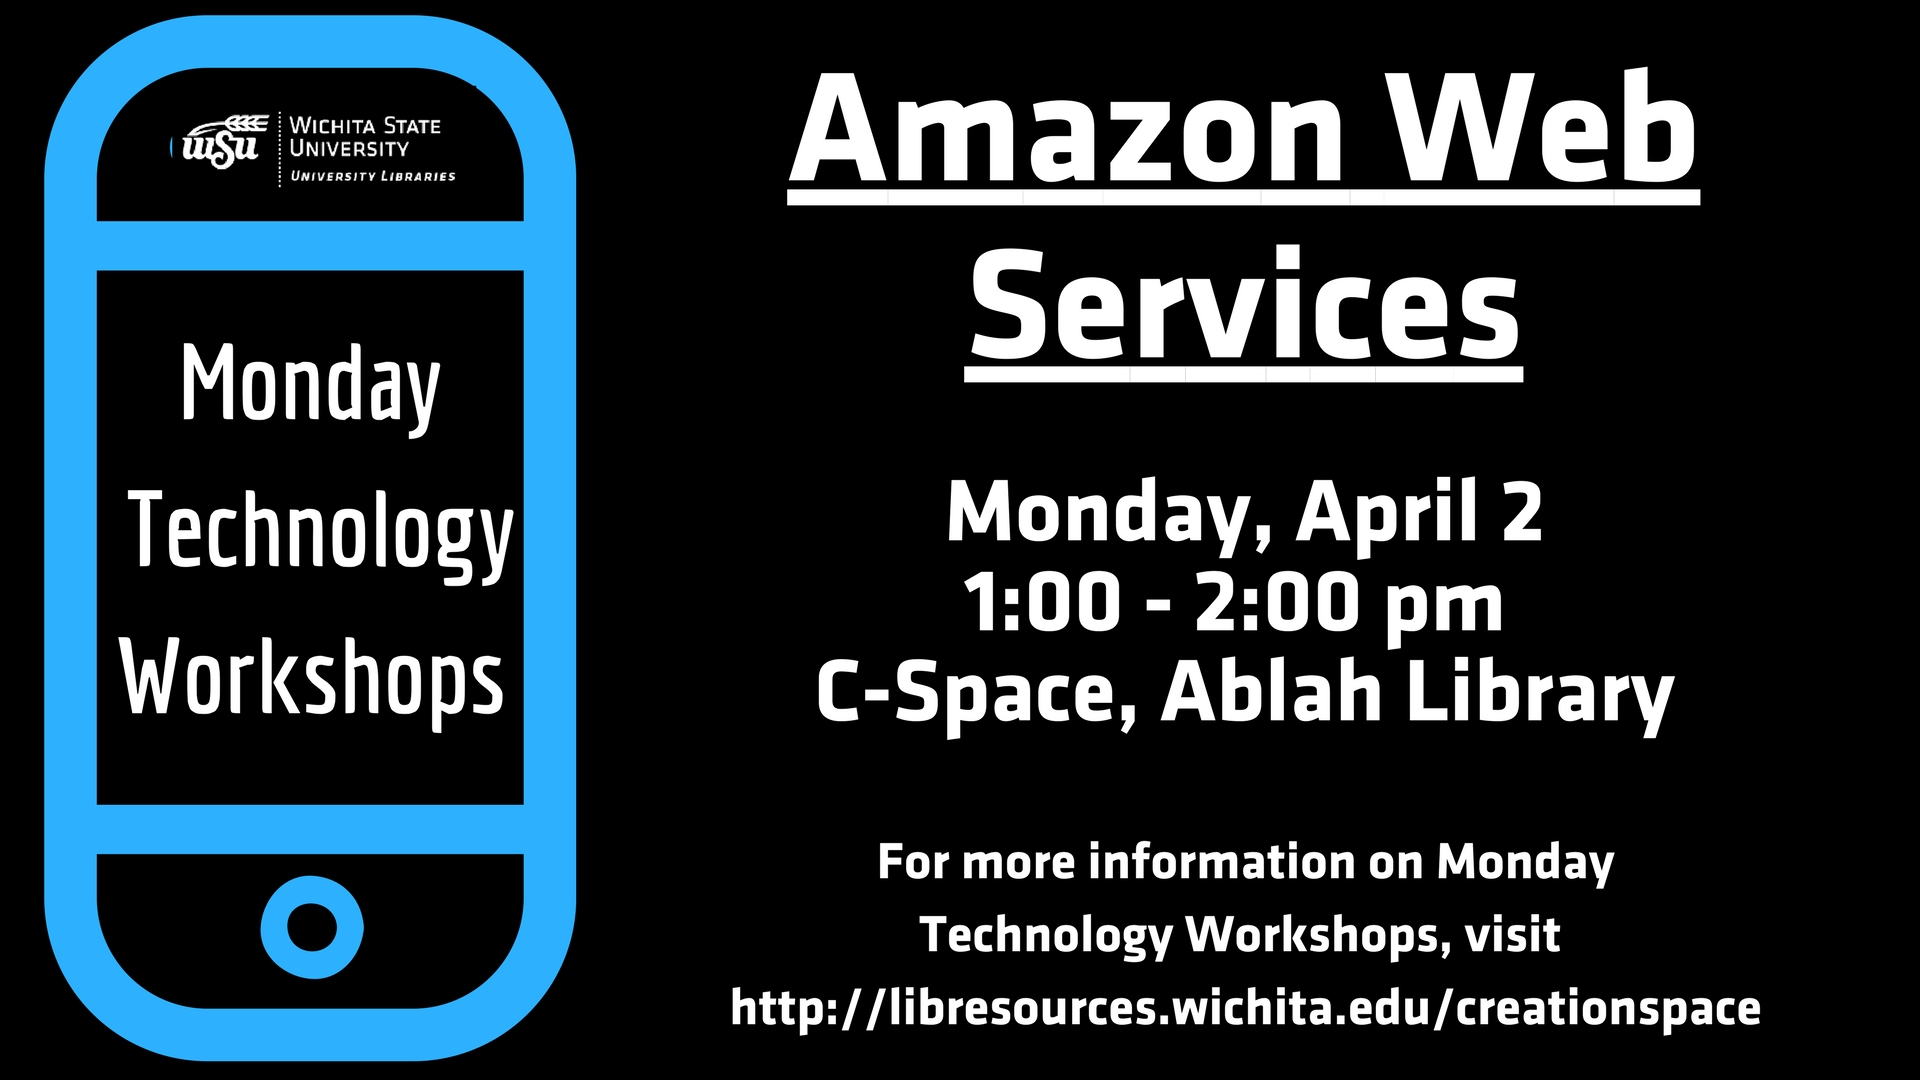 Monday Technology Workshop - Amazon Web Services